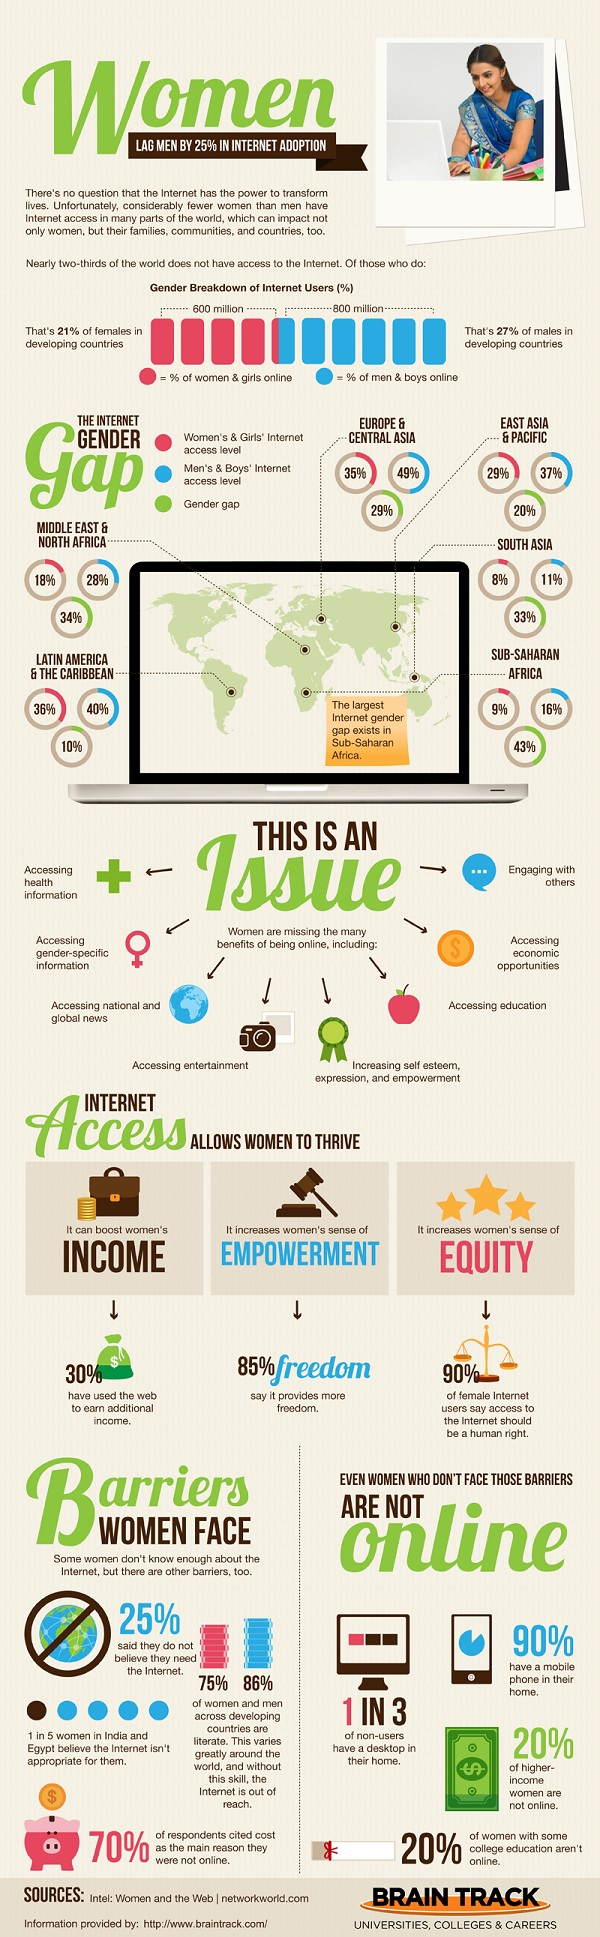 Women-Internet-Adoption